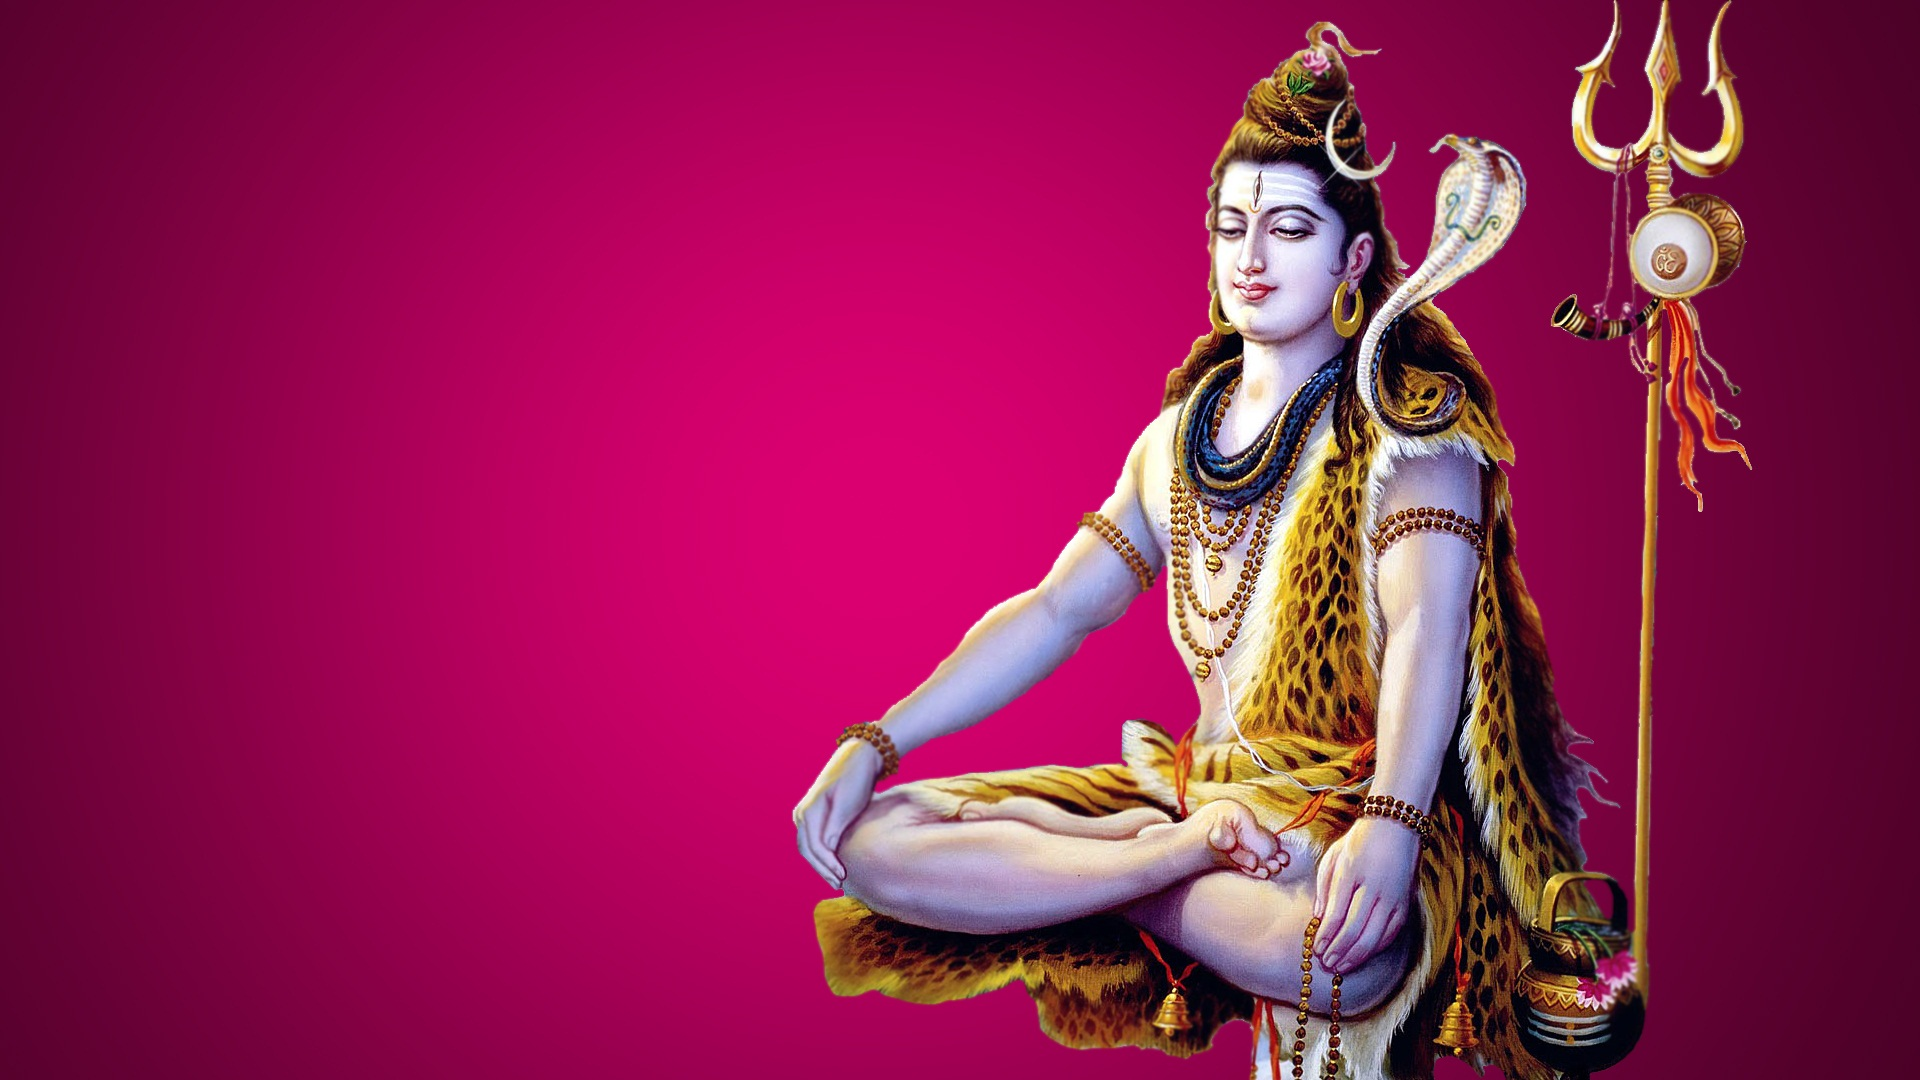 Lord Shiva Full Hd 1080p Photo: Lord Shiva Wallpapers HD